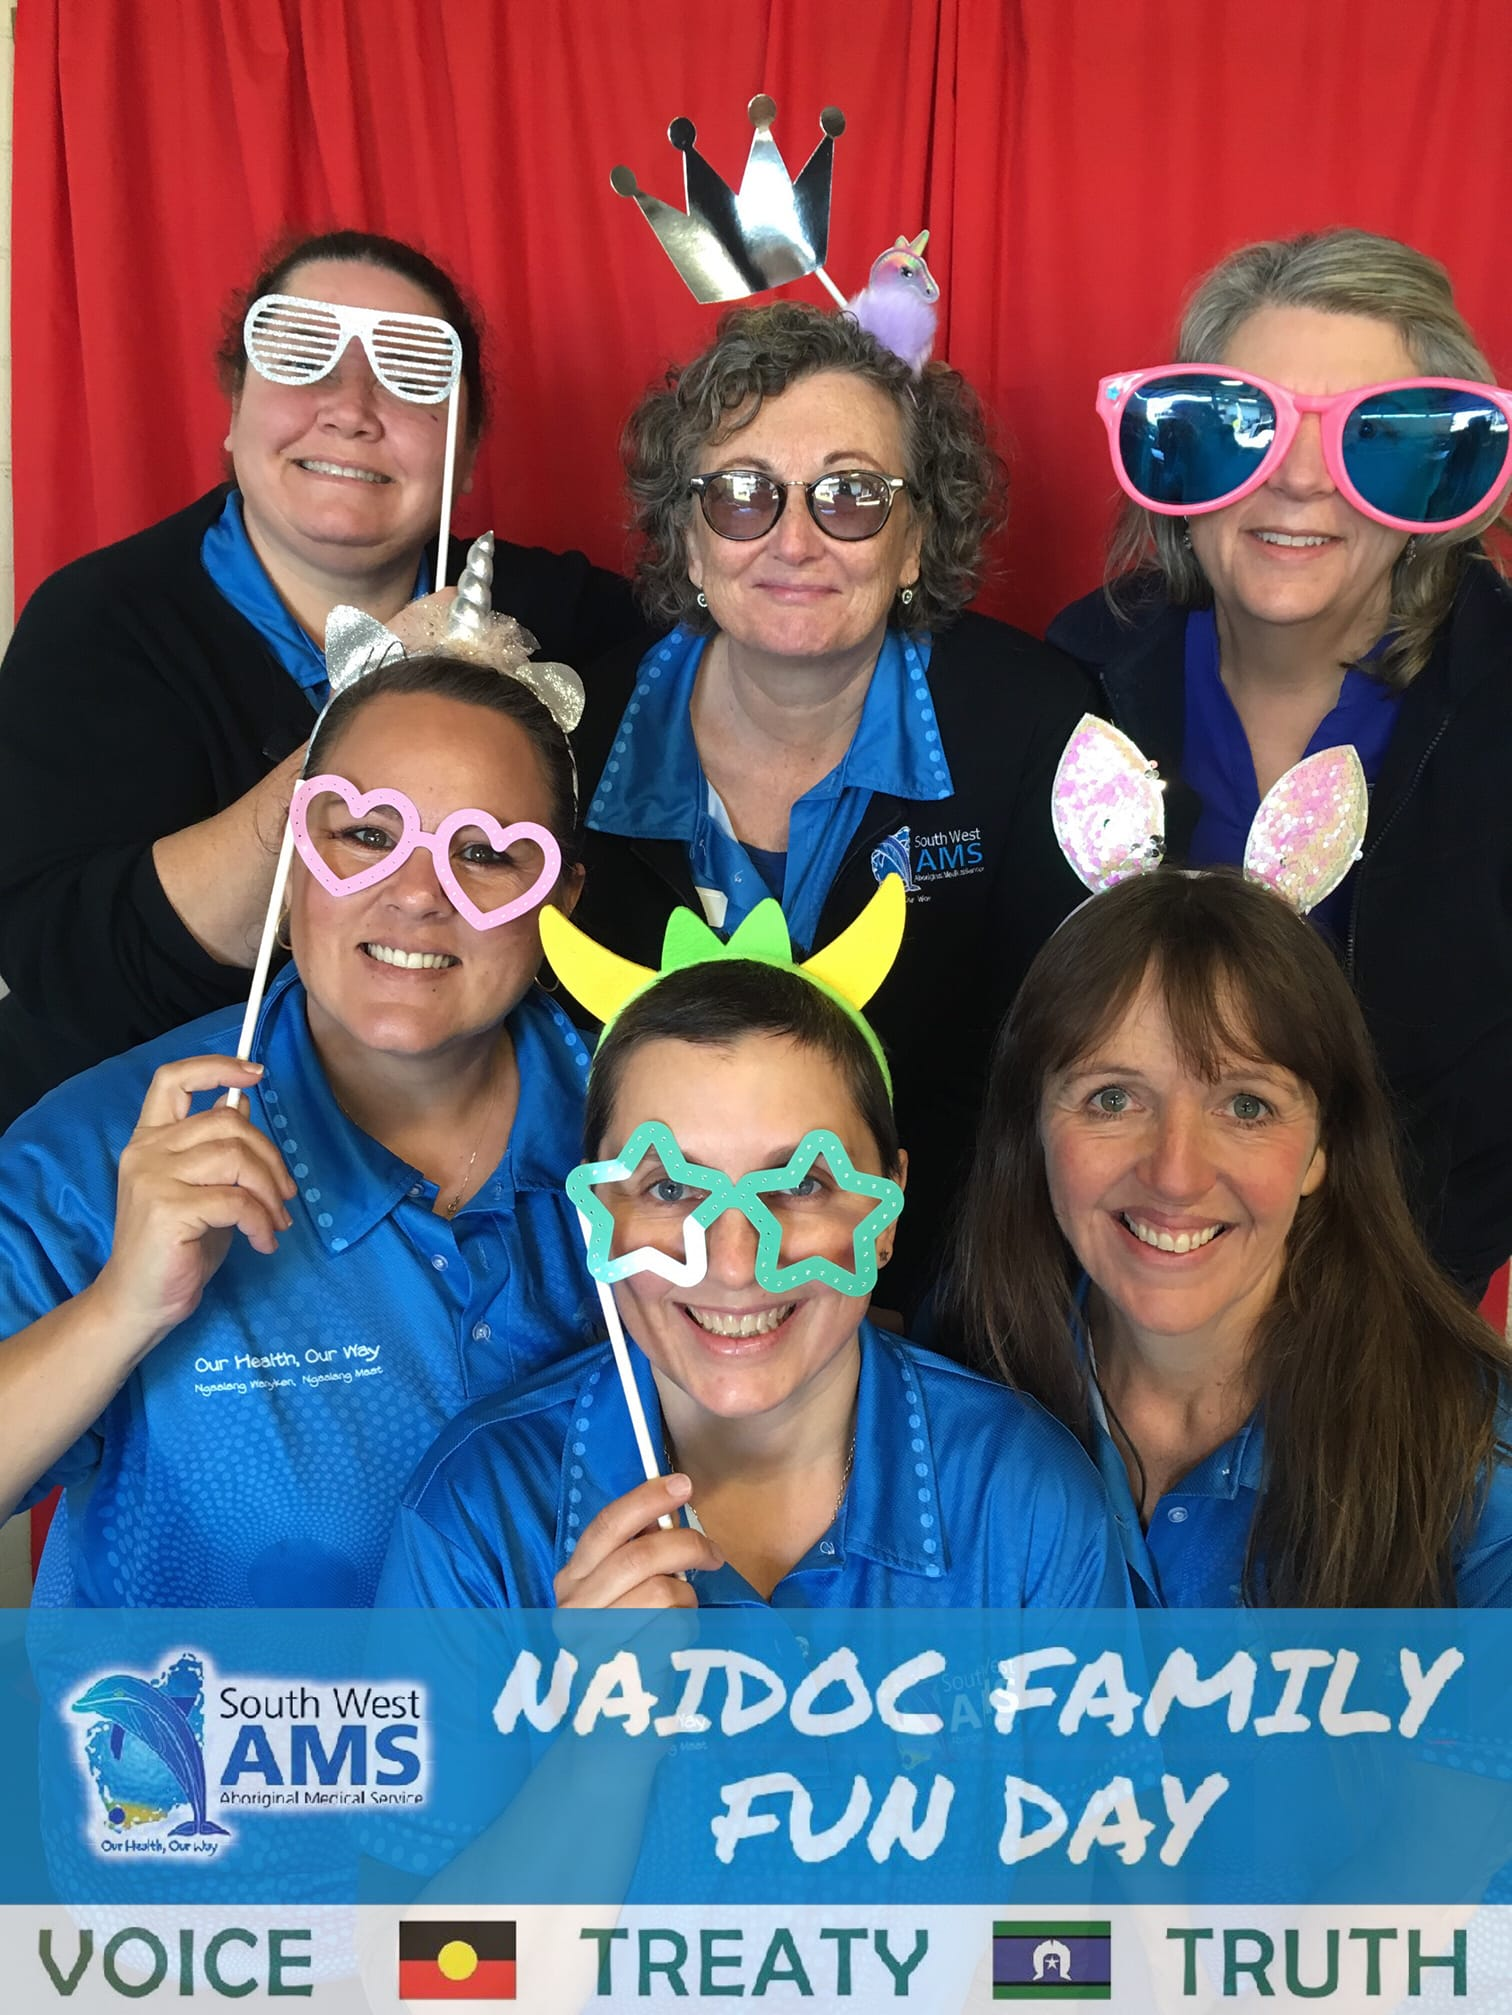 SWAMS 2019 NAIDOC events bring the community together